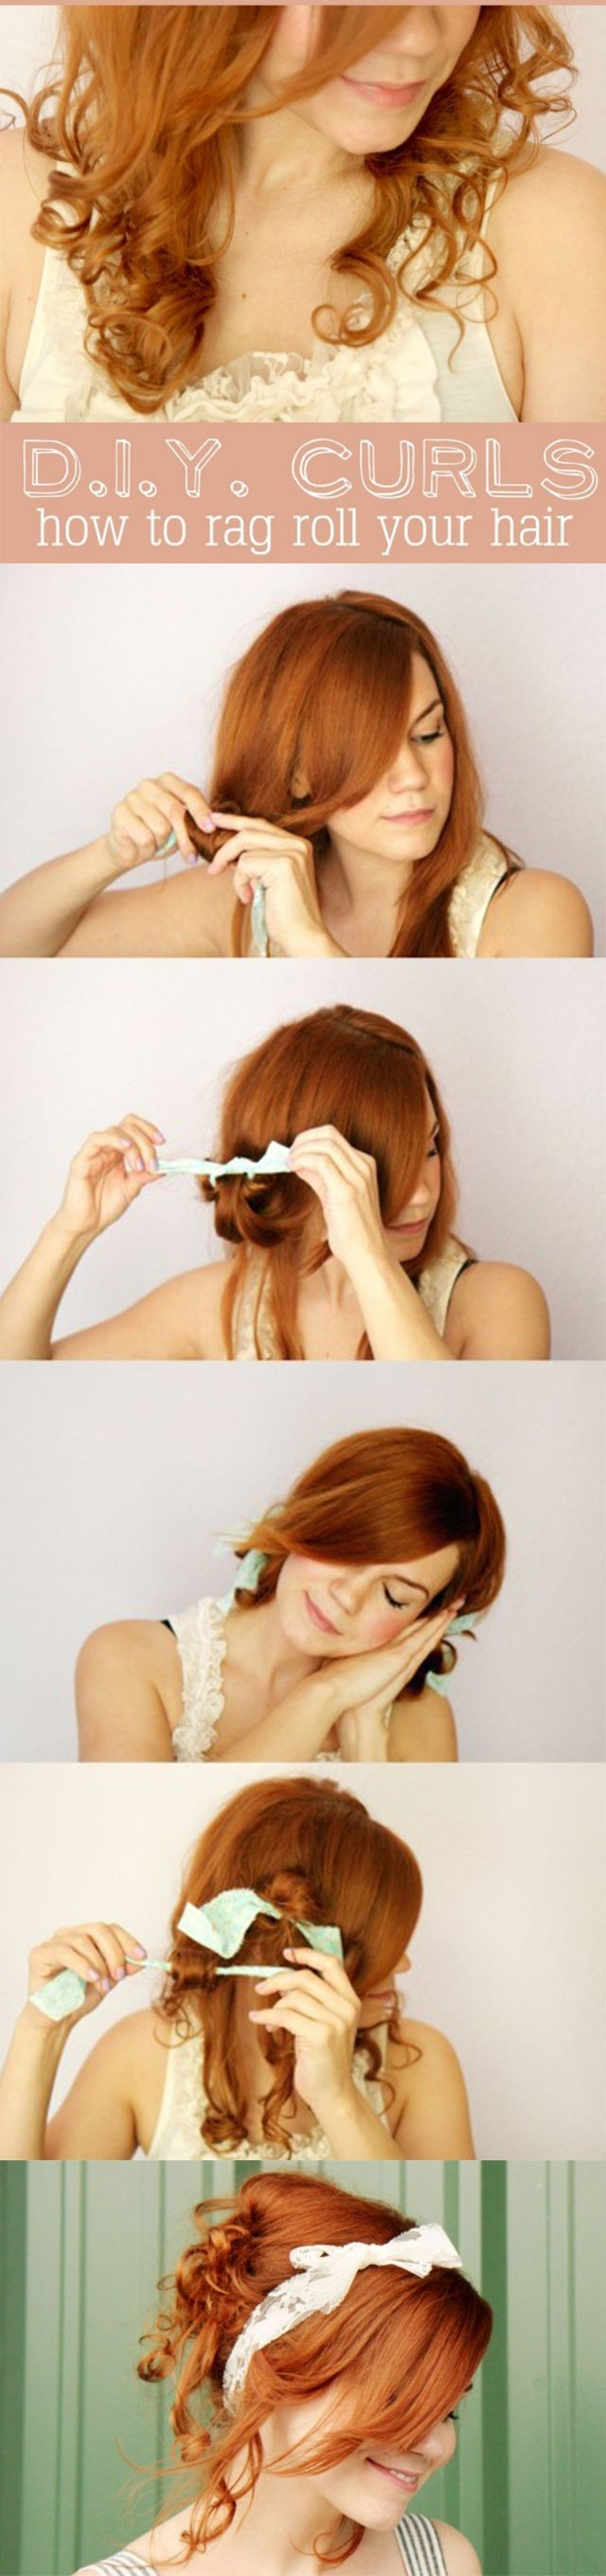 Cute Holiday Hairstyles: How to Rag Roll your Hair